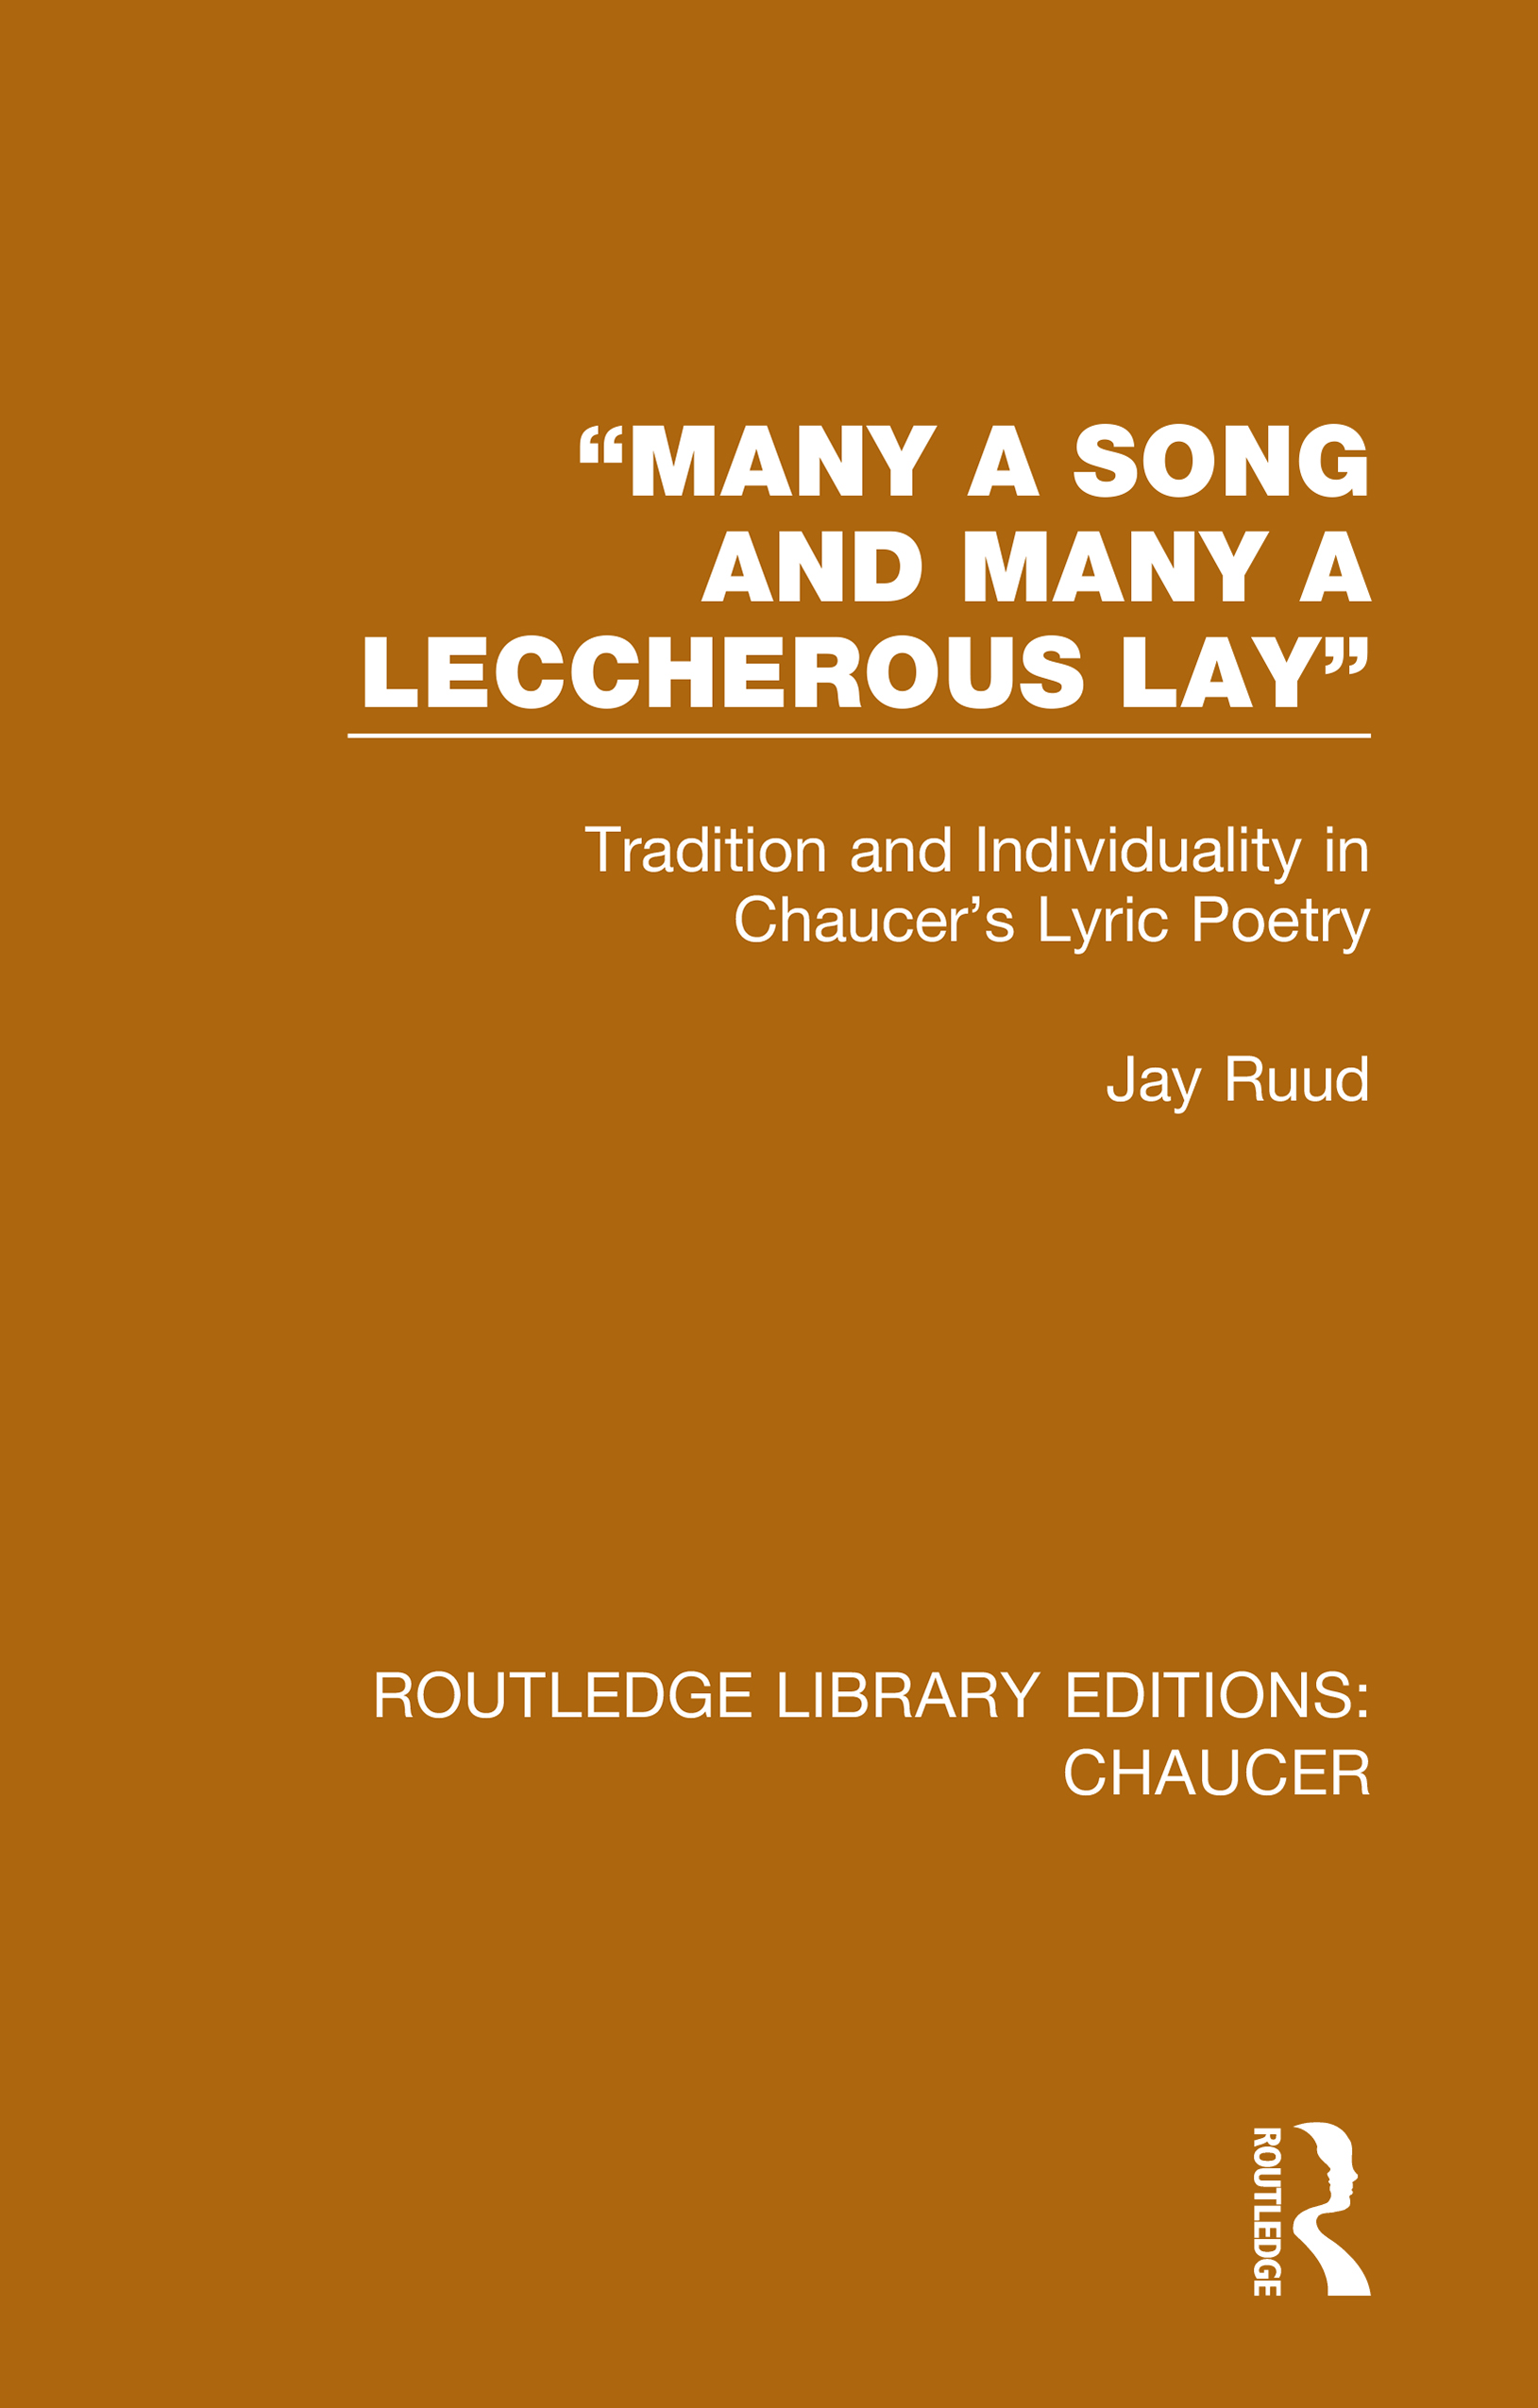 """""""Then ende I thus, sith I may do no more"""": The Place of Chaucer's Lyrics"""